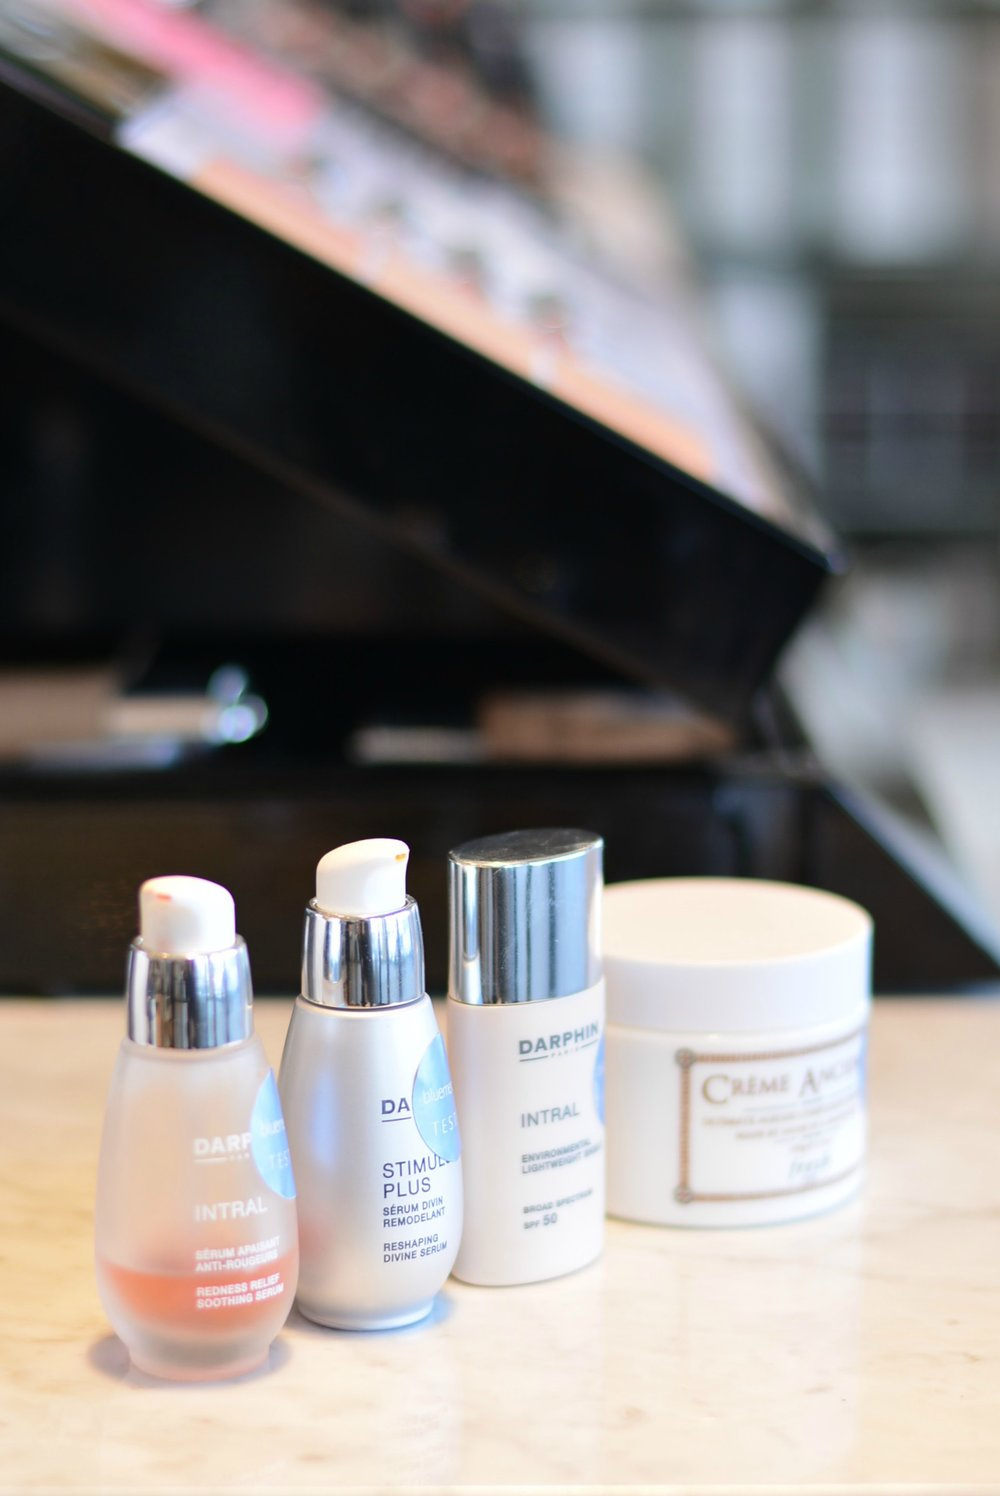 Solutions for adult acne at Bluemercury